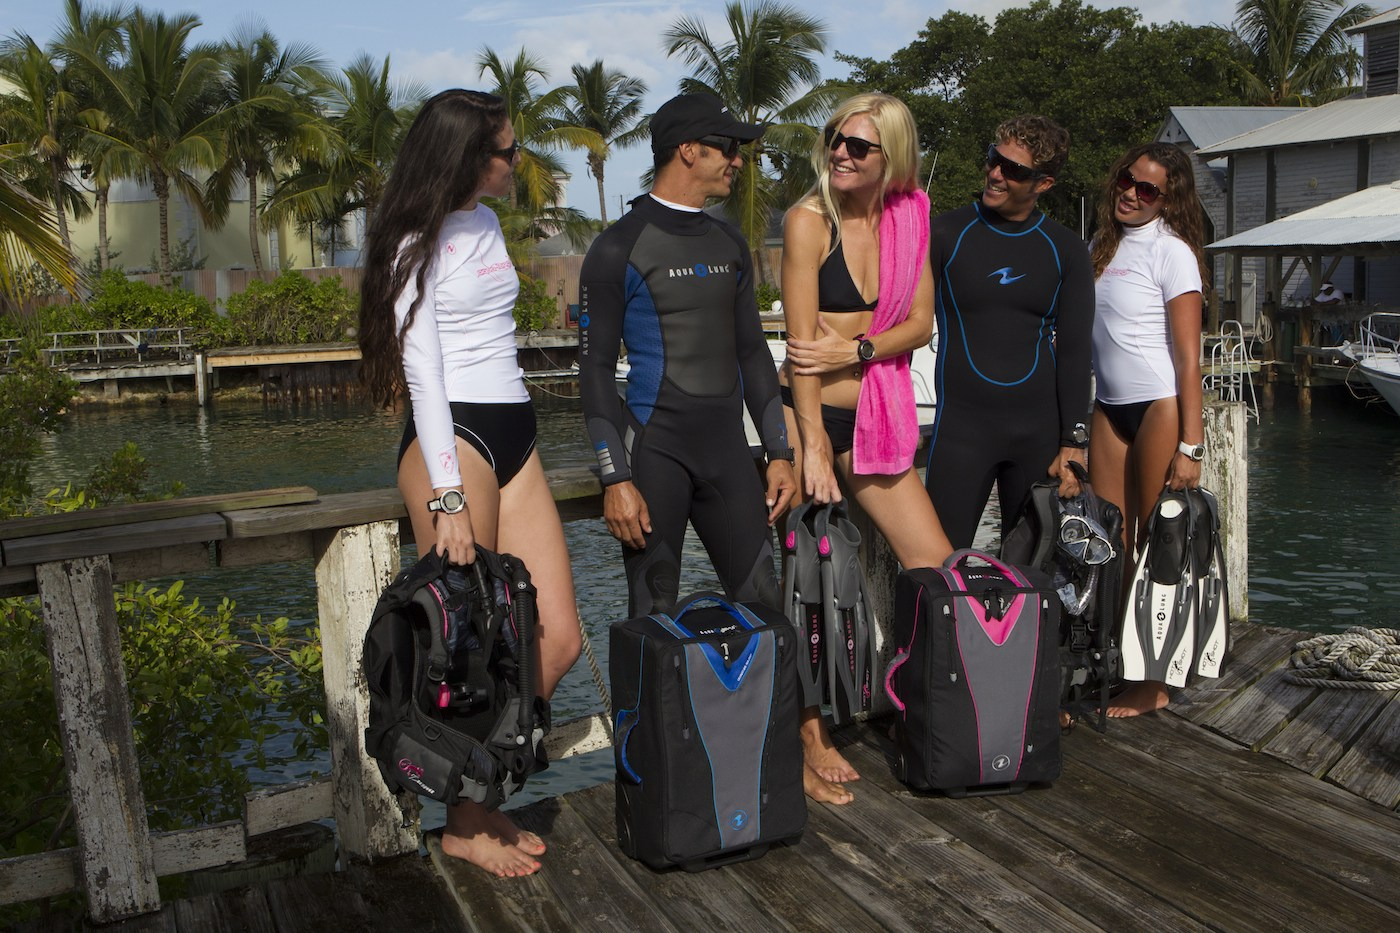 Is it possible to travel light AND bring dive equipment?